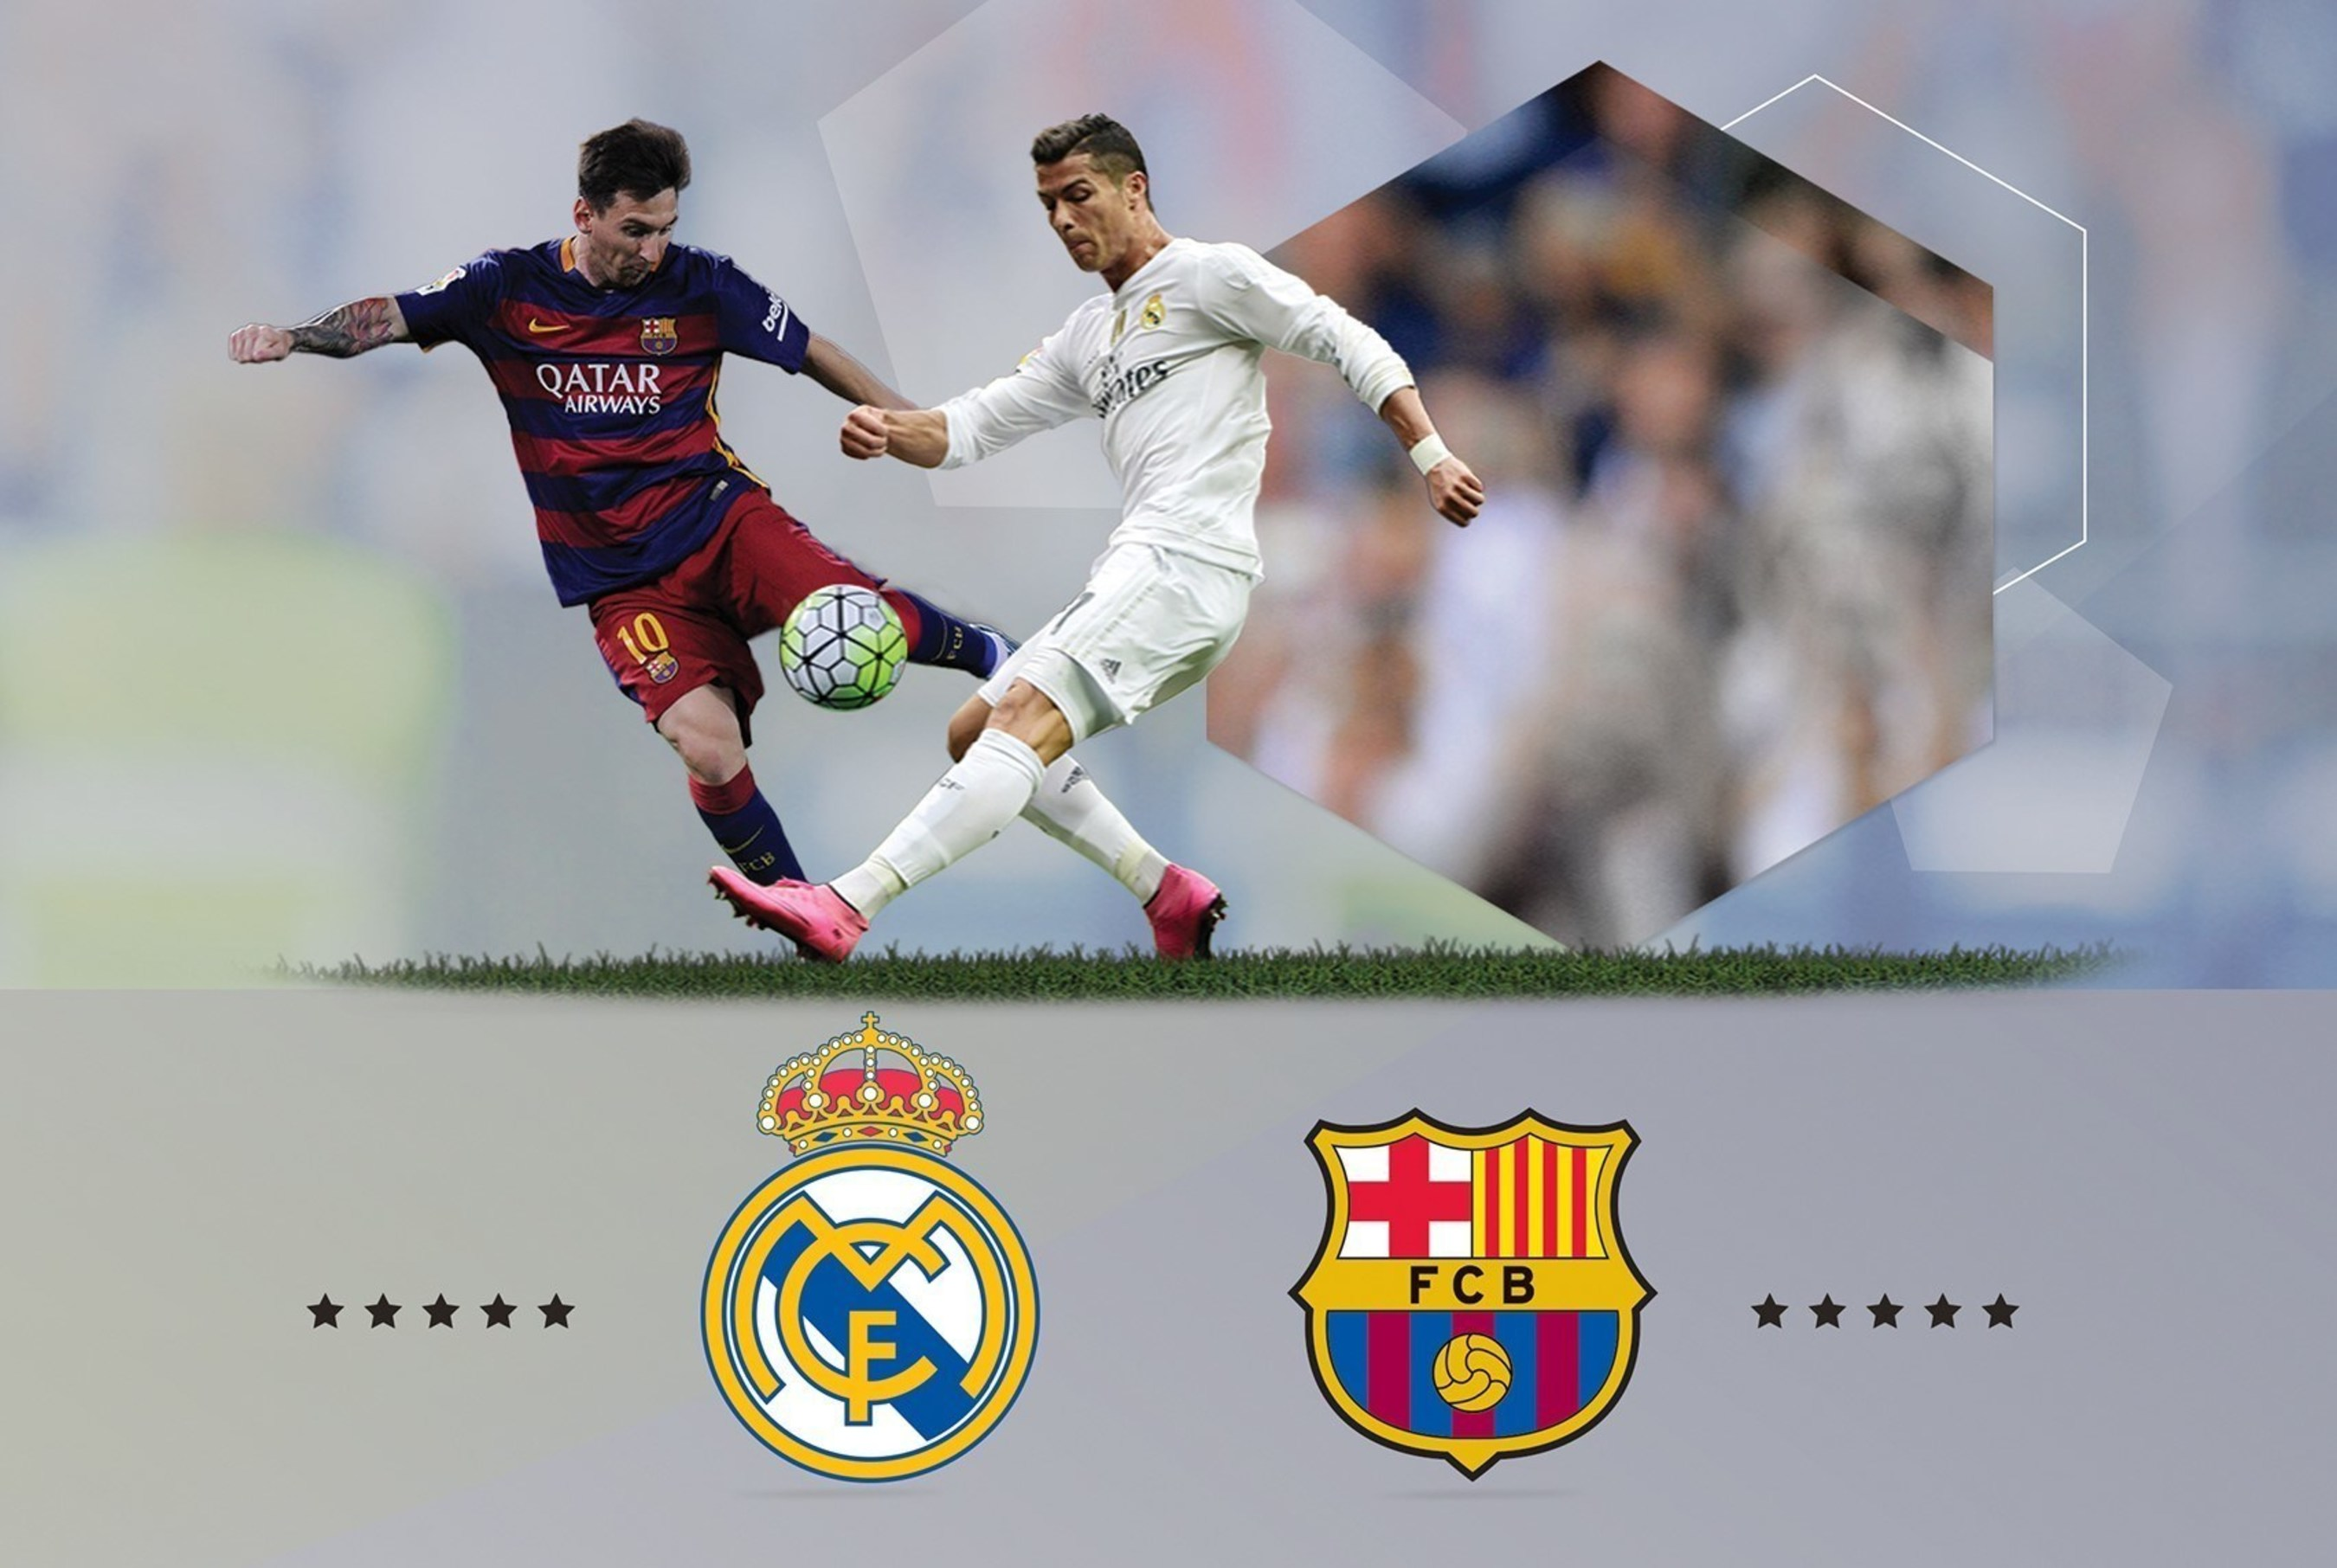 This Saturday, November 21, LaLiga and beIN SPORTS USA brings the action to Miami soccer fans with